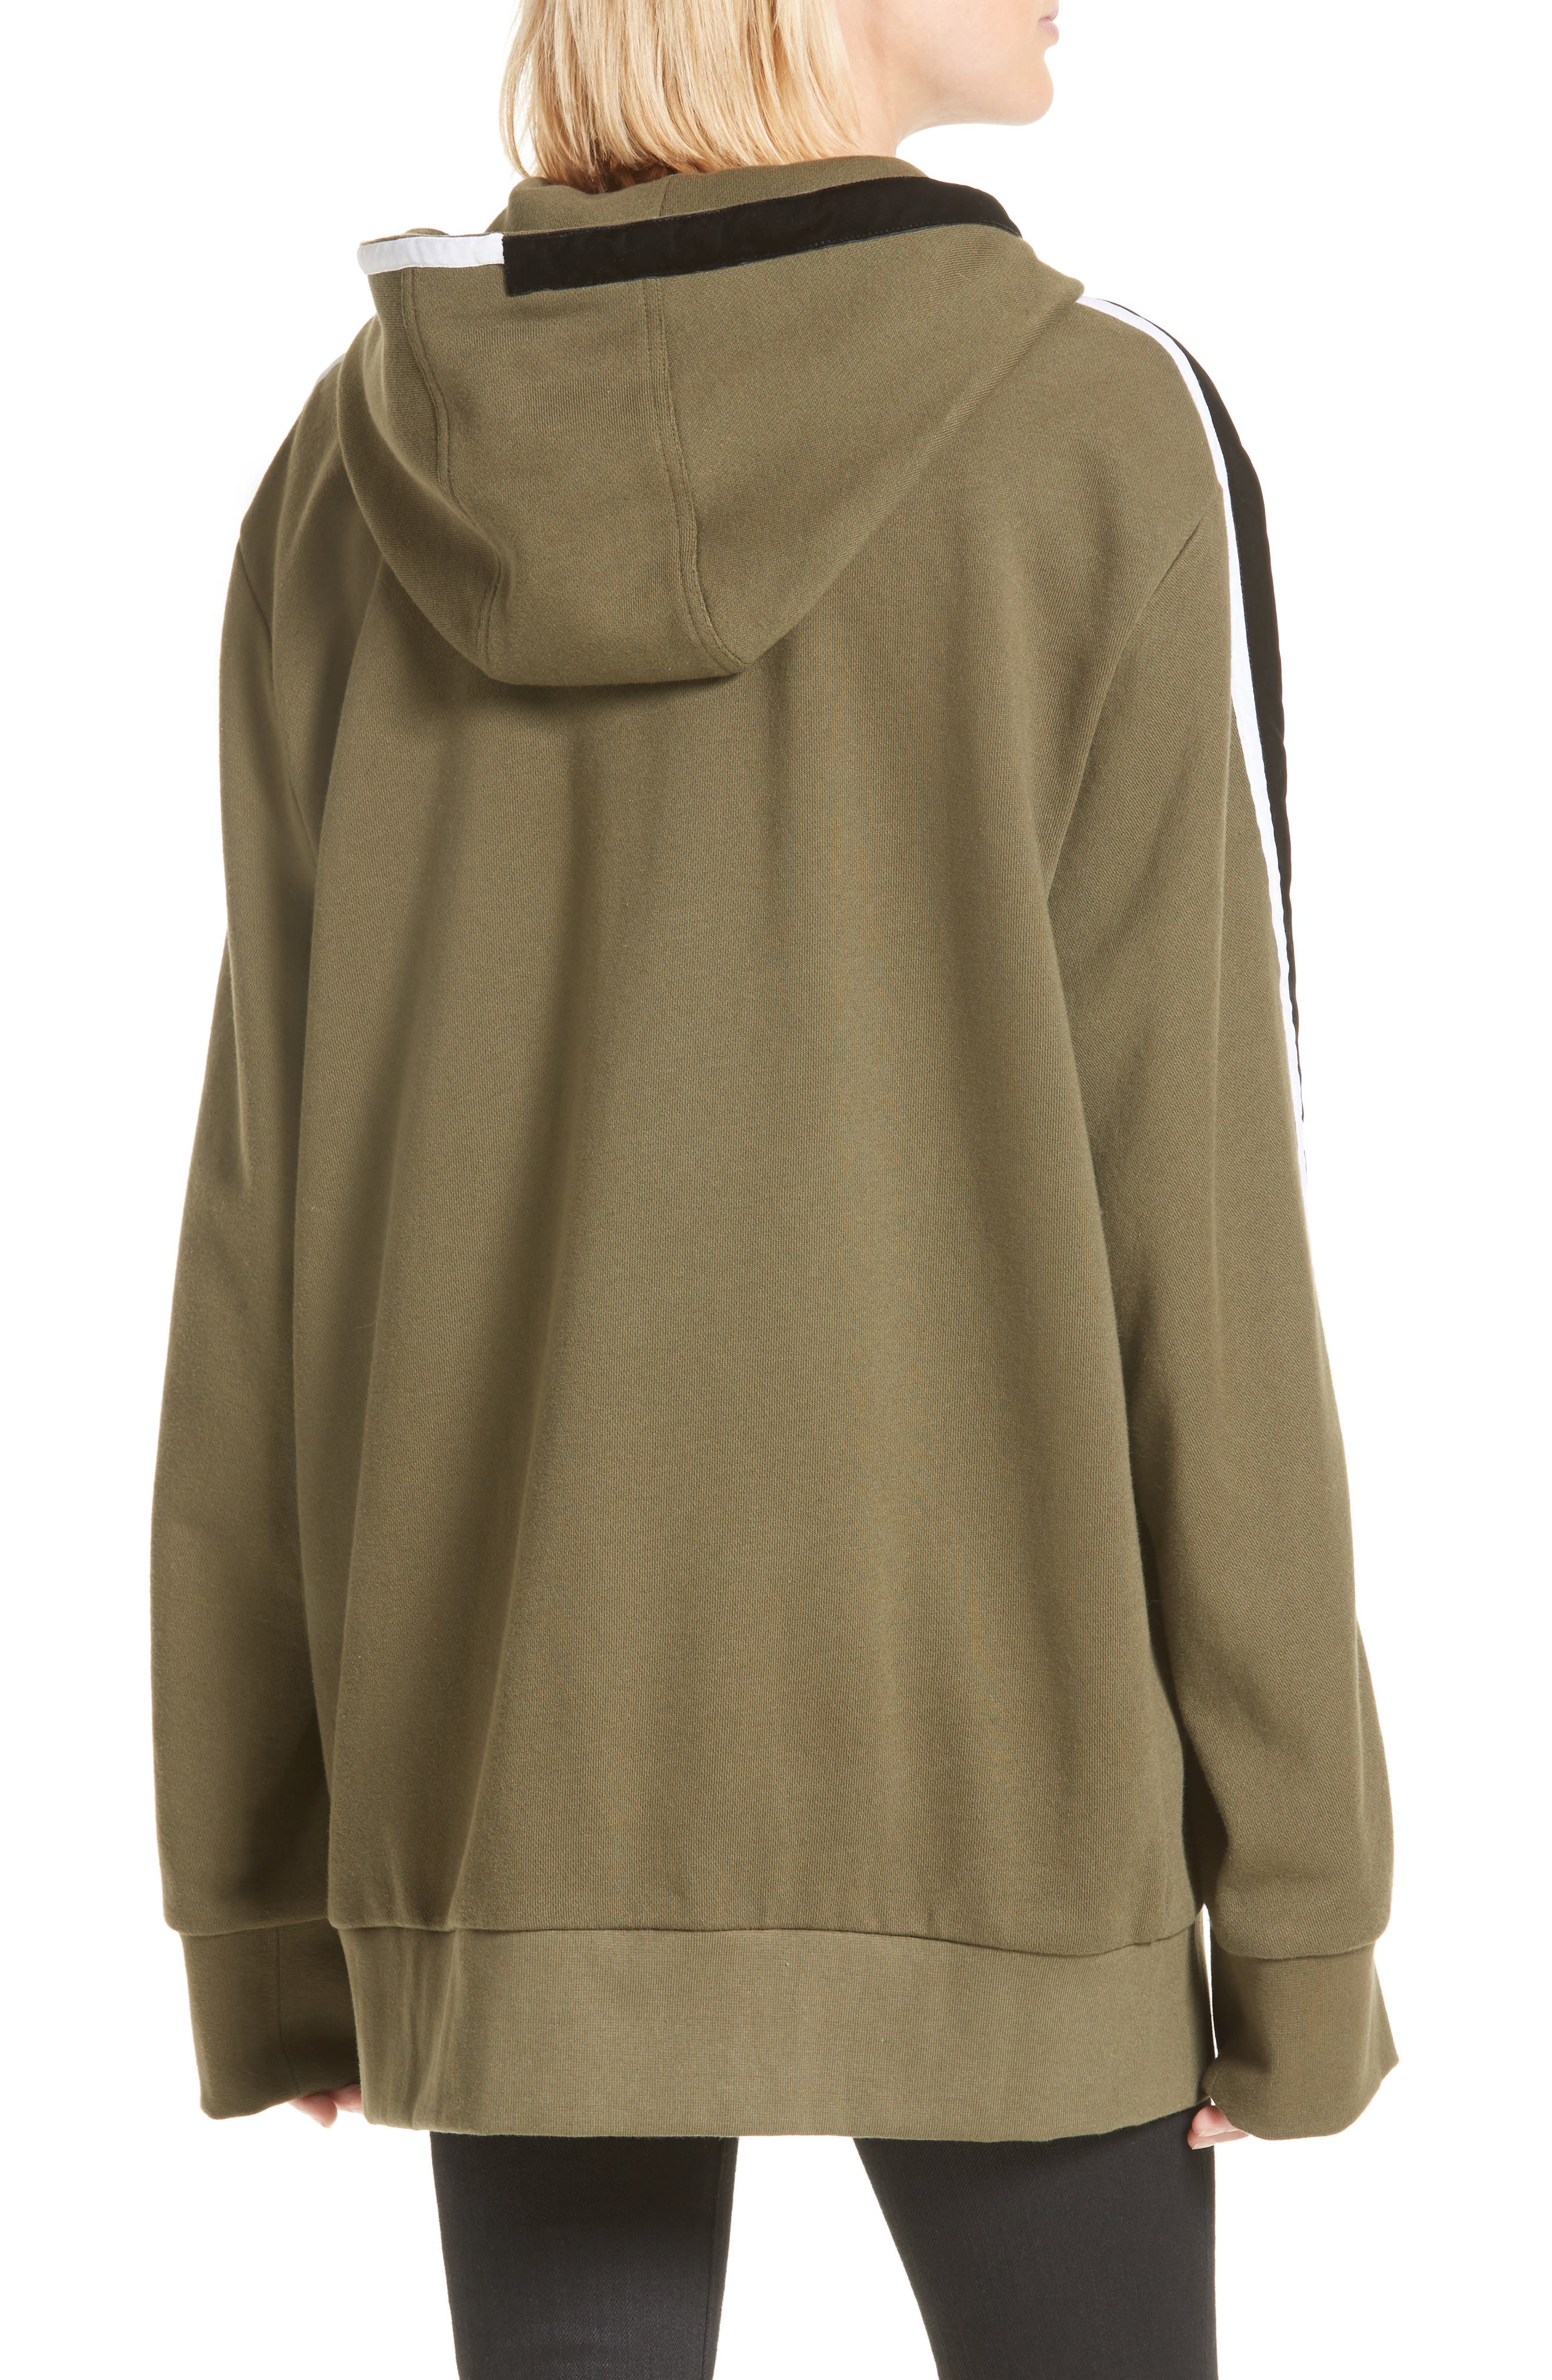 Leta Hoodie,                             Alternate thumbnail 2, color,                             300